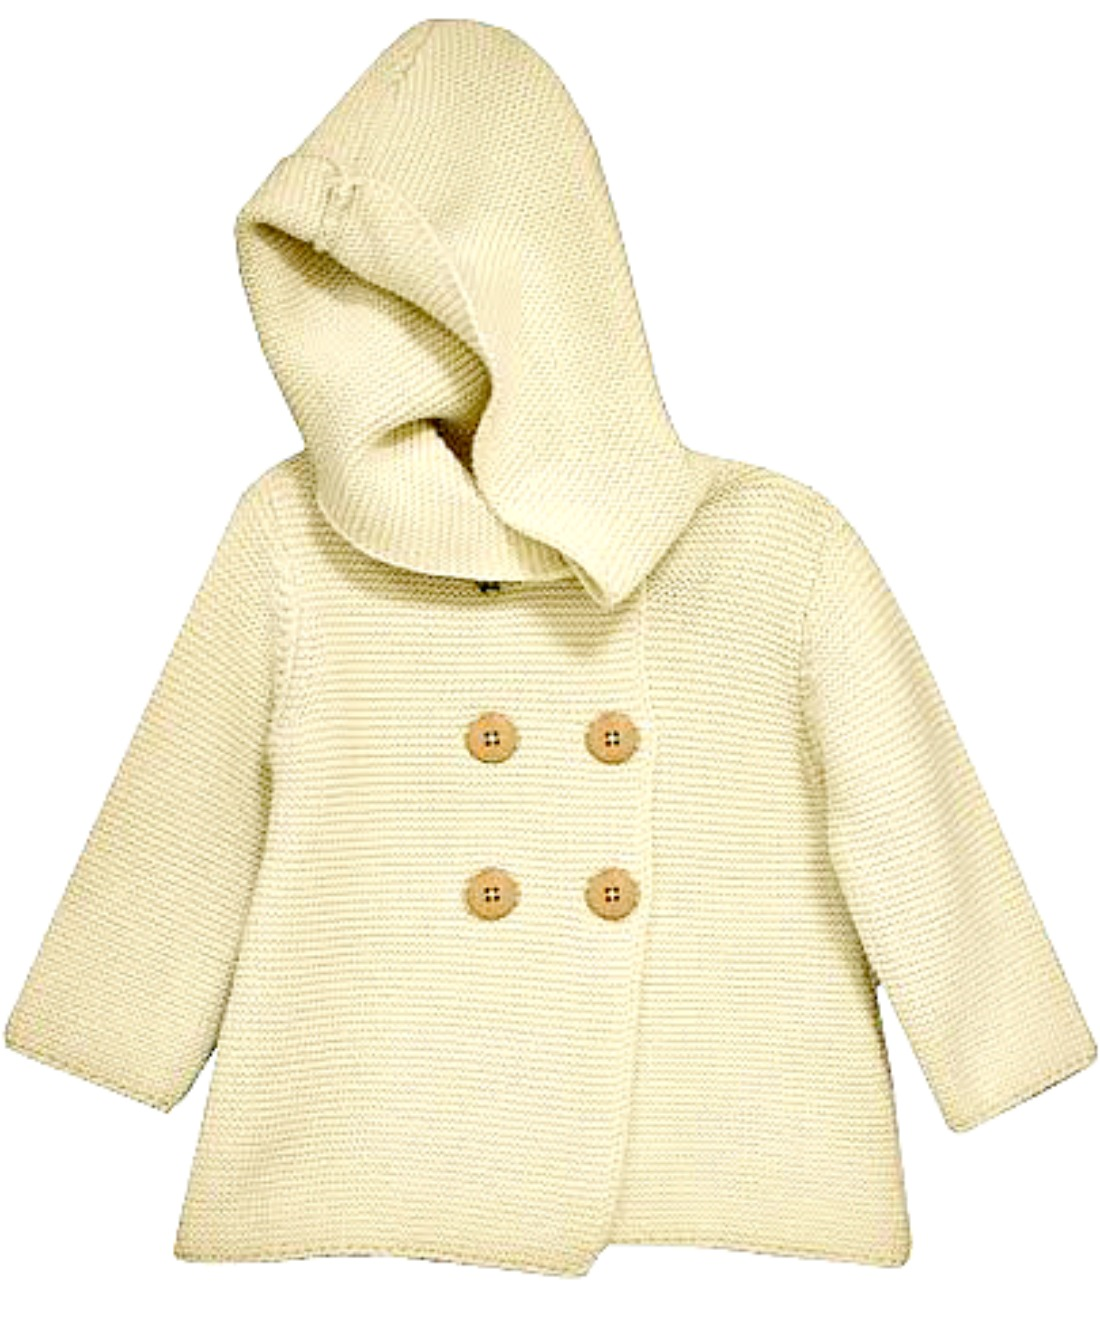 Bonnie Jean Little Girls Ivory Cotton Cardigan Sweater Coat 3T